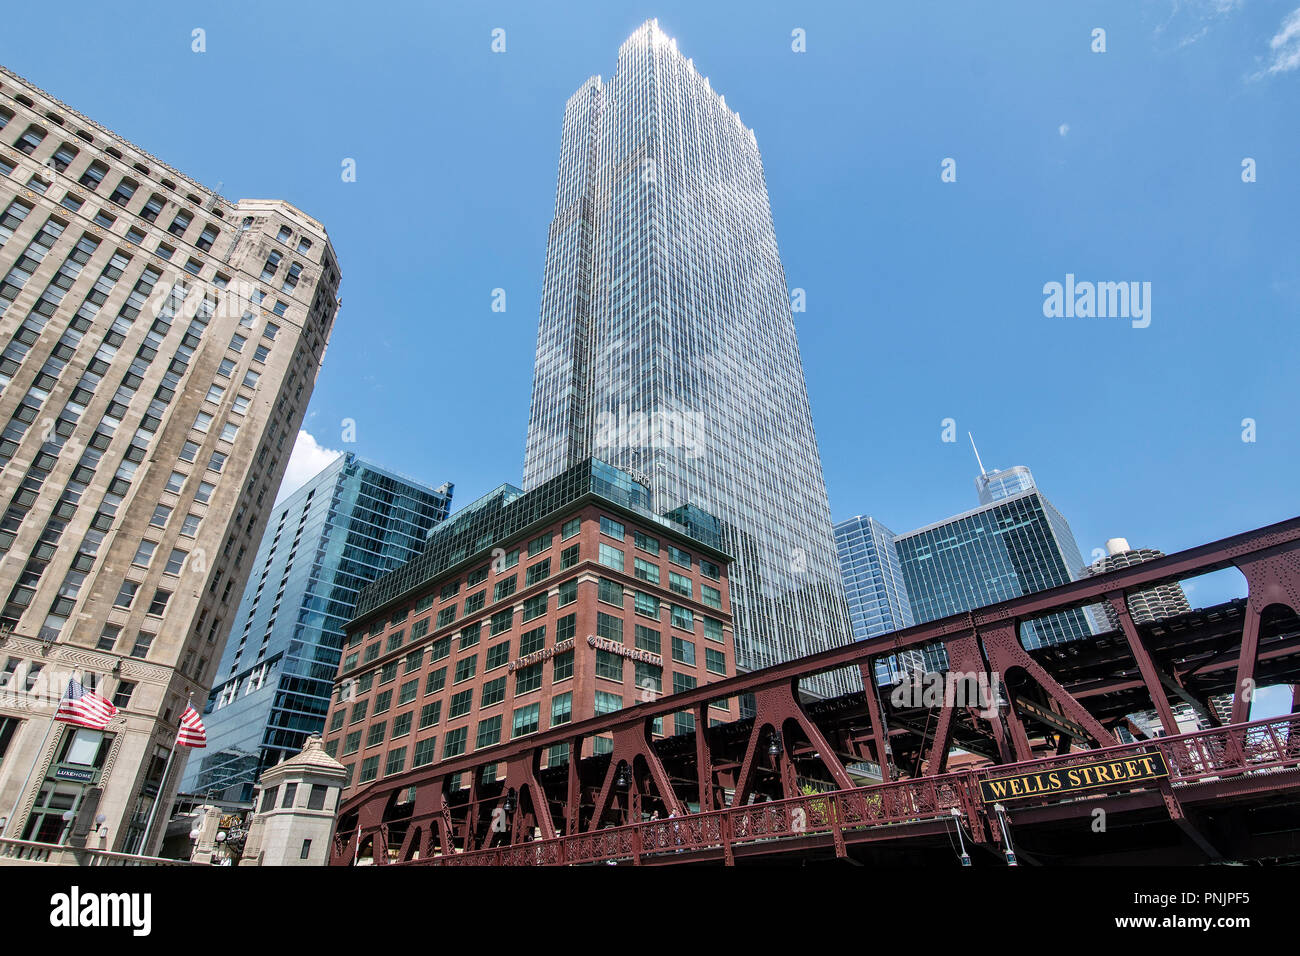 Wells Street Bridge, Boston Consulting Tower and Merchandise Mart, Downtown Chicago, IL. - Stock Image